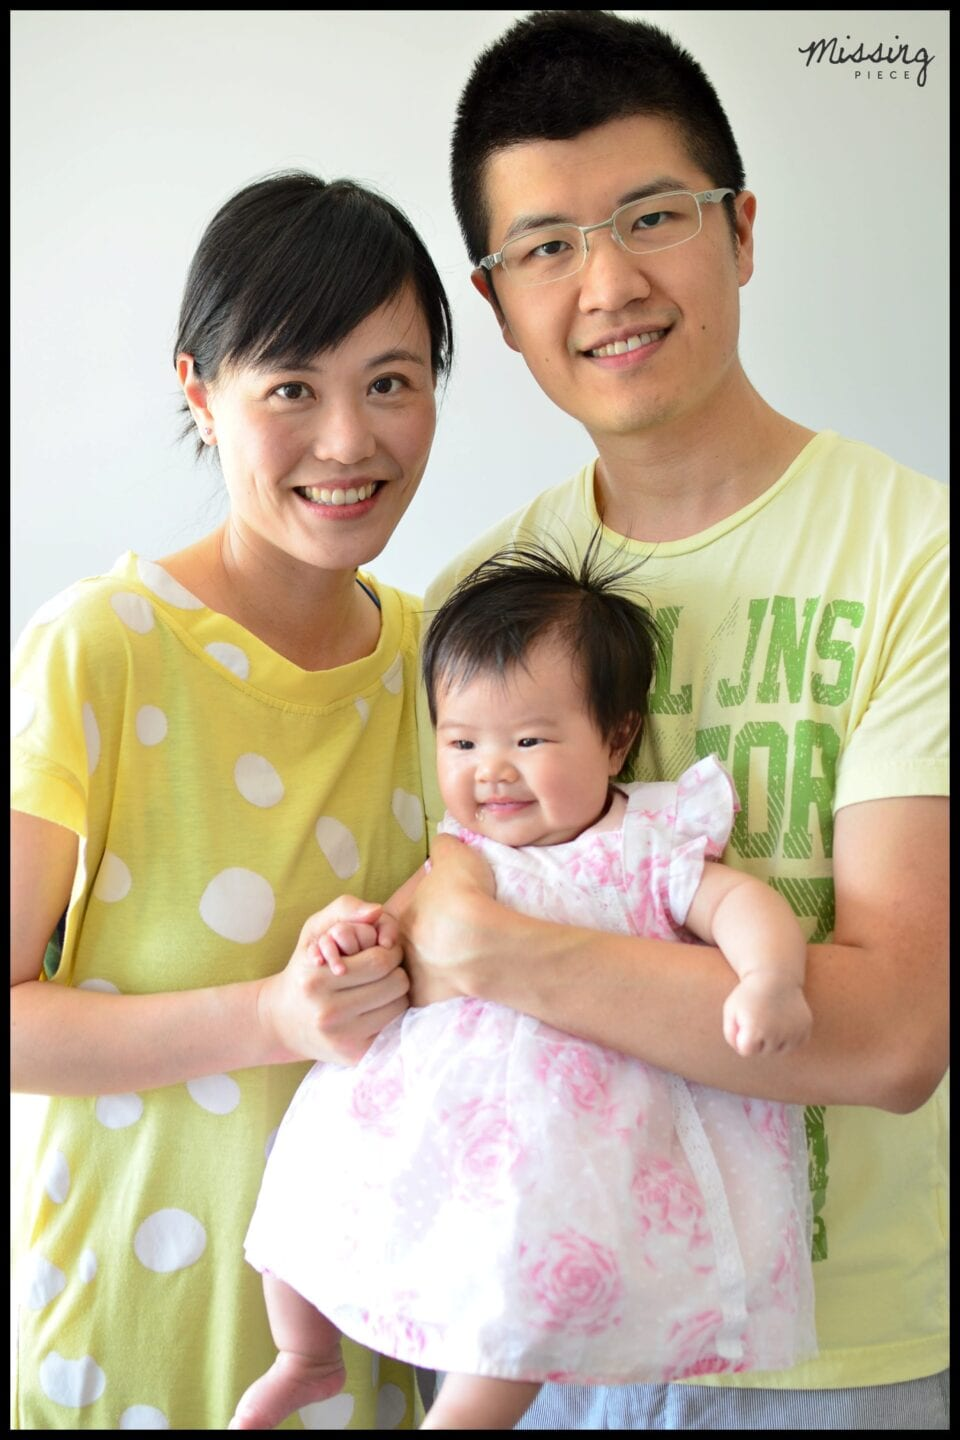 Mother and father smiles for a picture with their baby in their hands